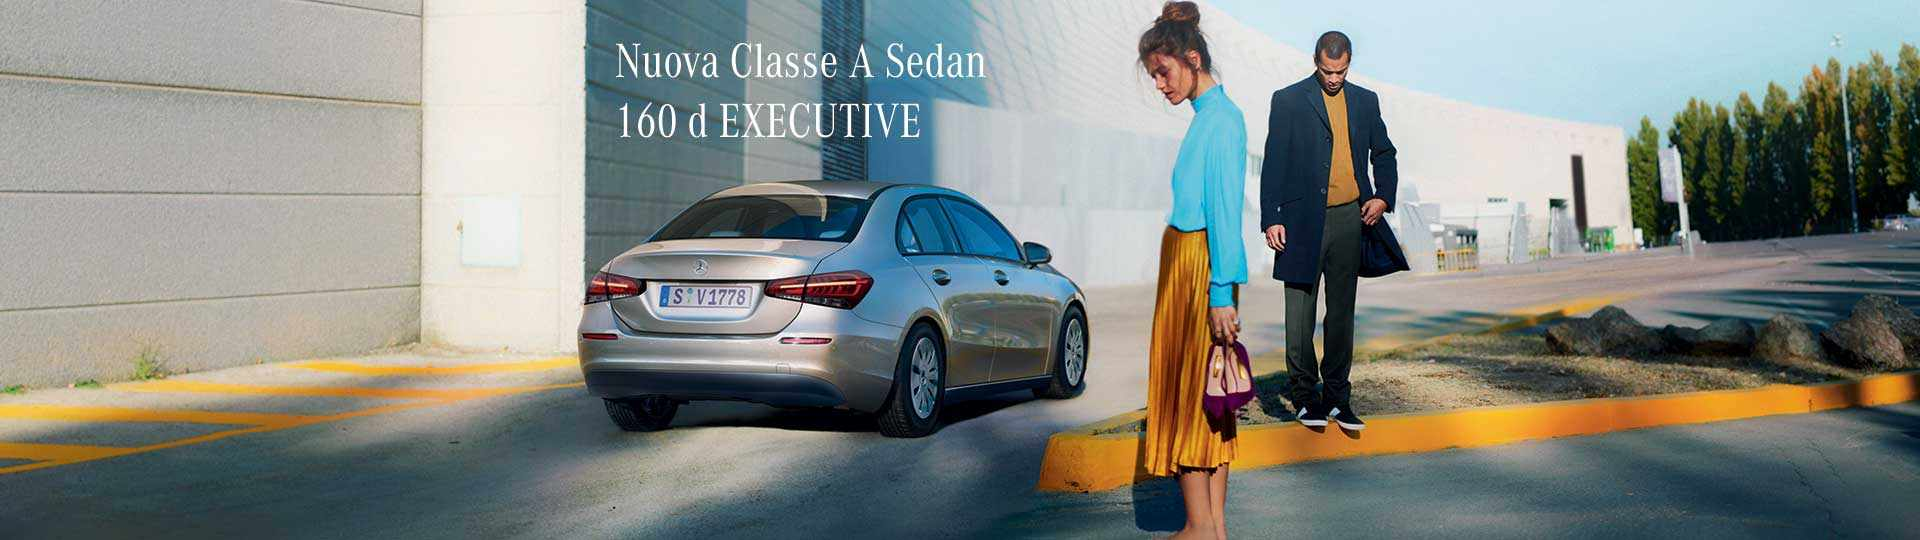 header_mercedes_classe_a_sedan.jpg